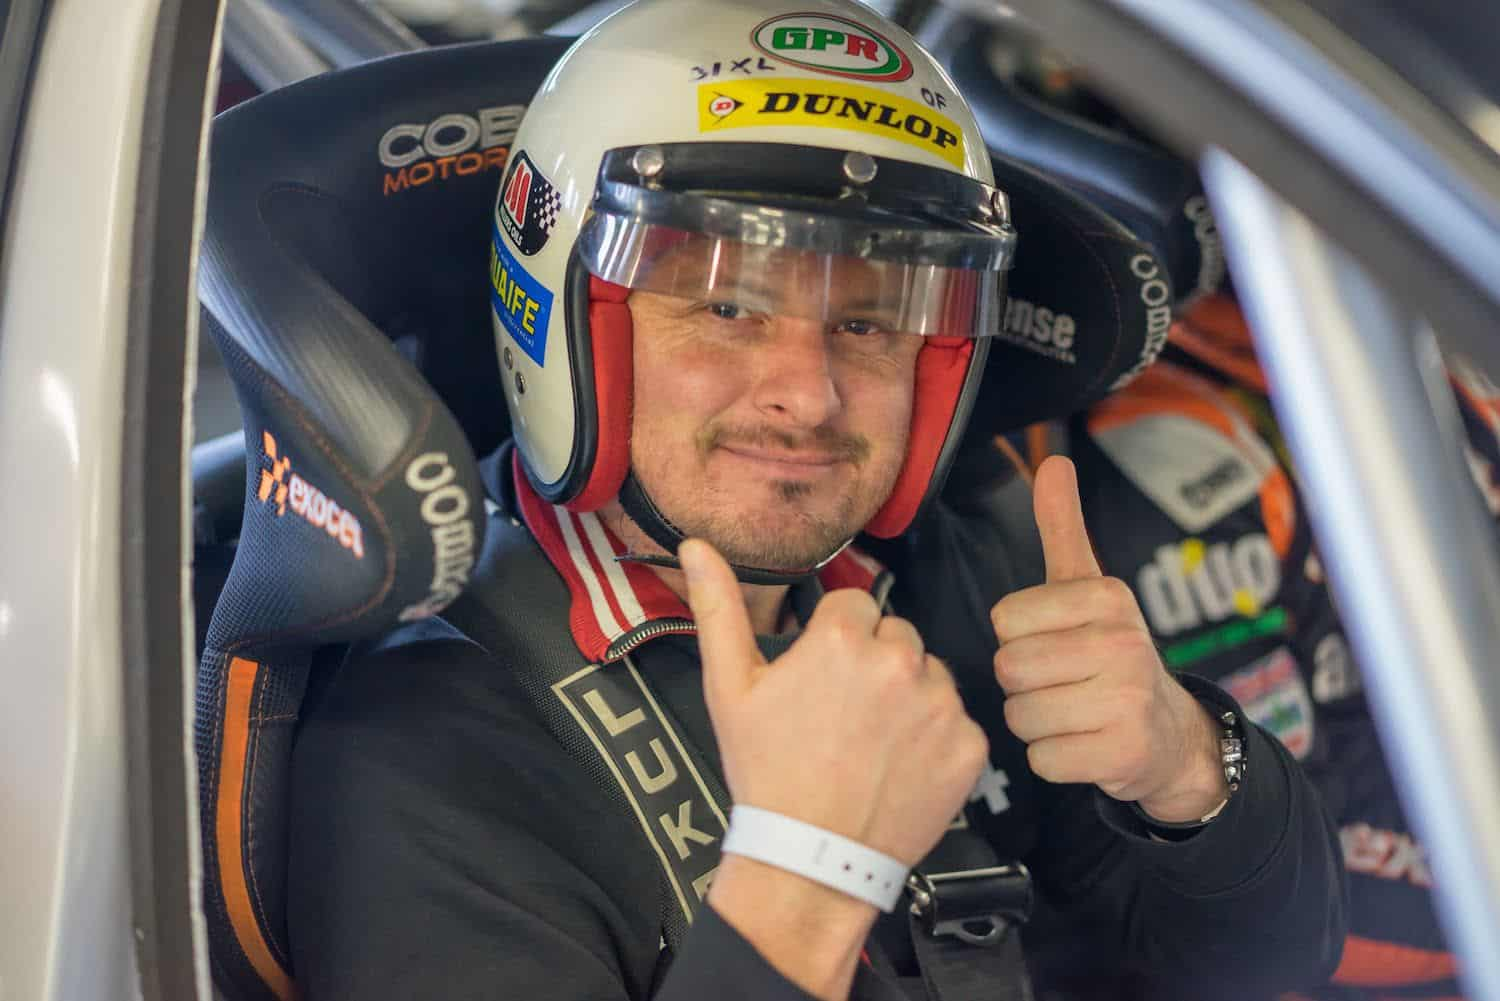 Stuart from The Car Expert is ready to hit the track with Rob Austin in his Exocet BTCC Audi A4